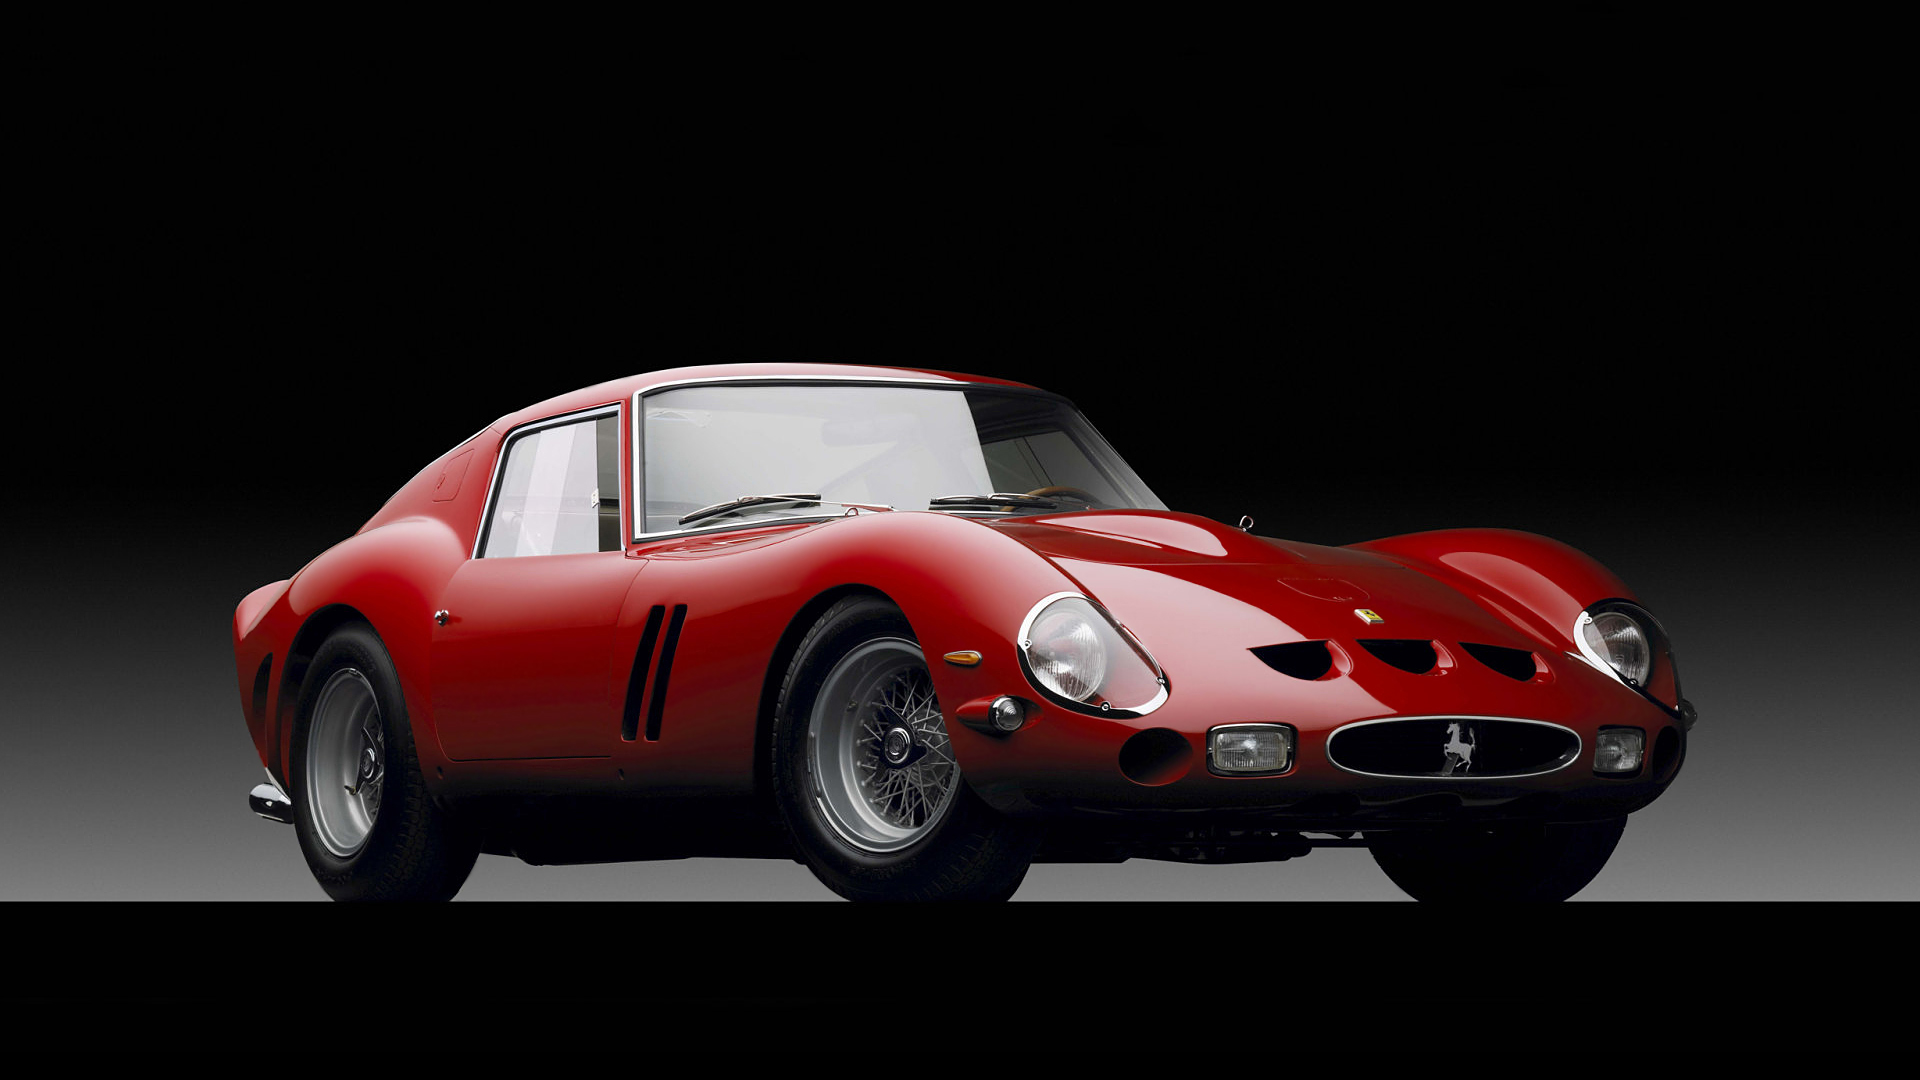 1962 Ferrari 250 GTO Wallpapers HD Images   WSupercars 1920x1080